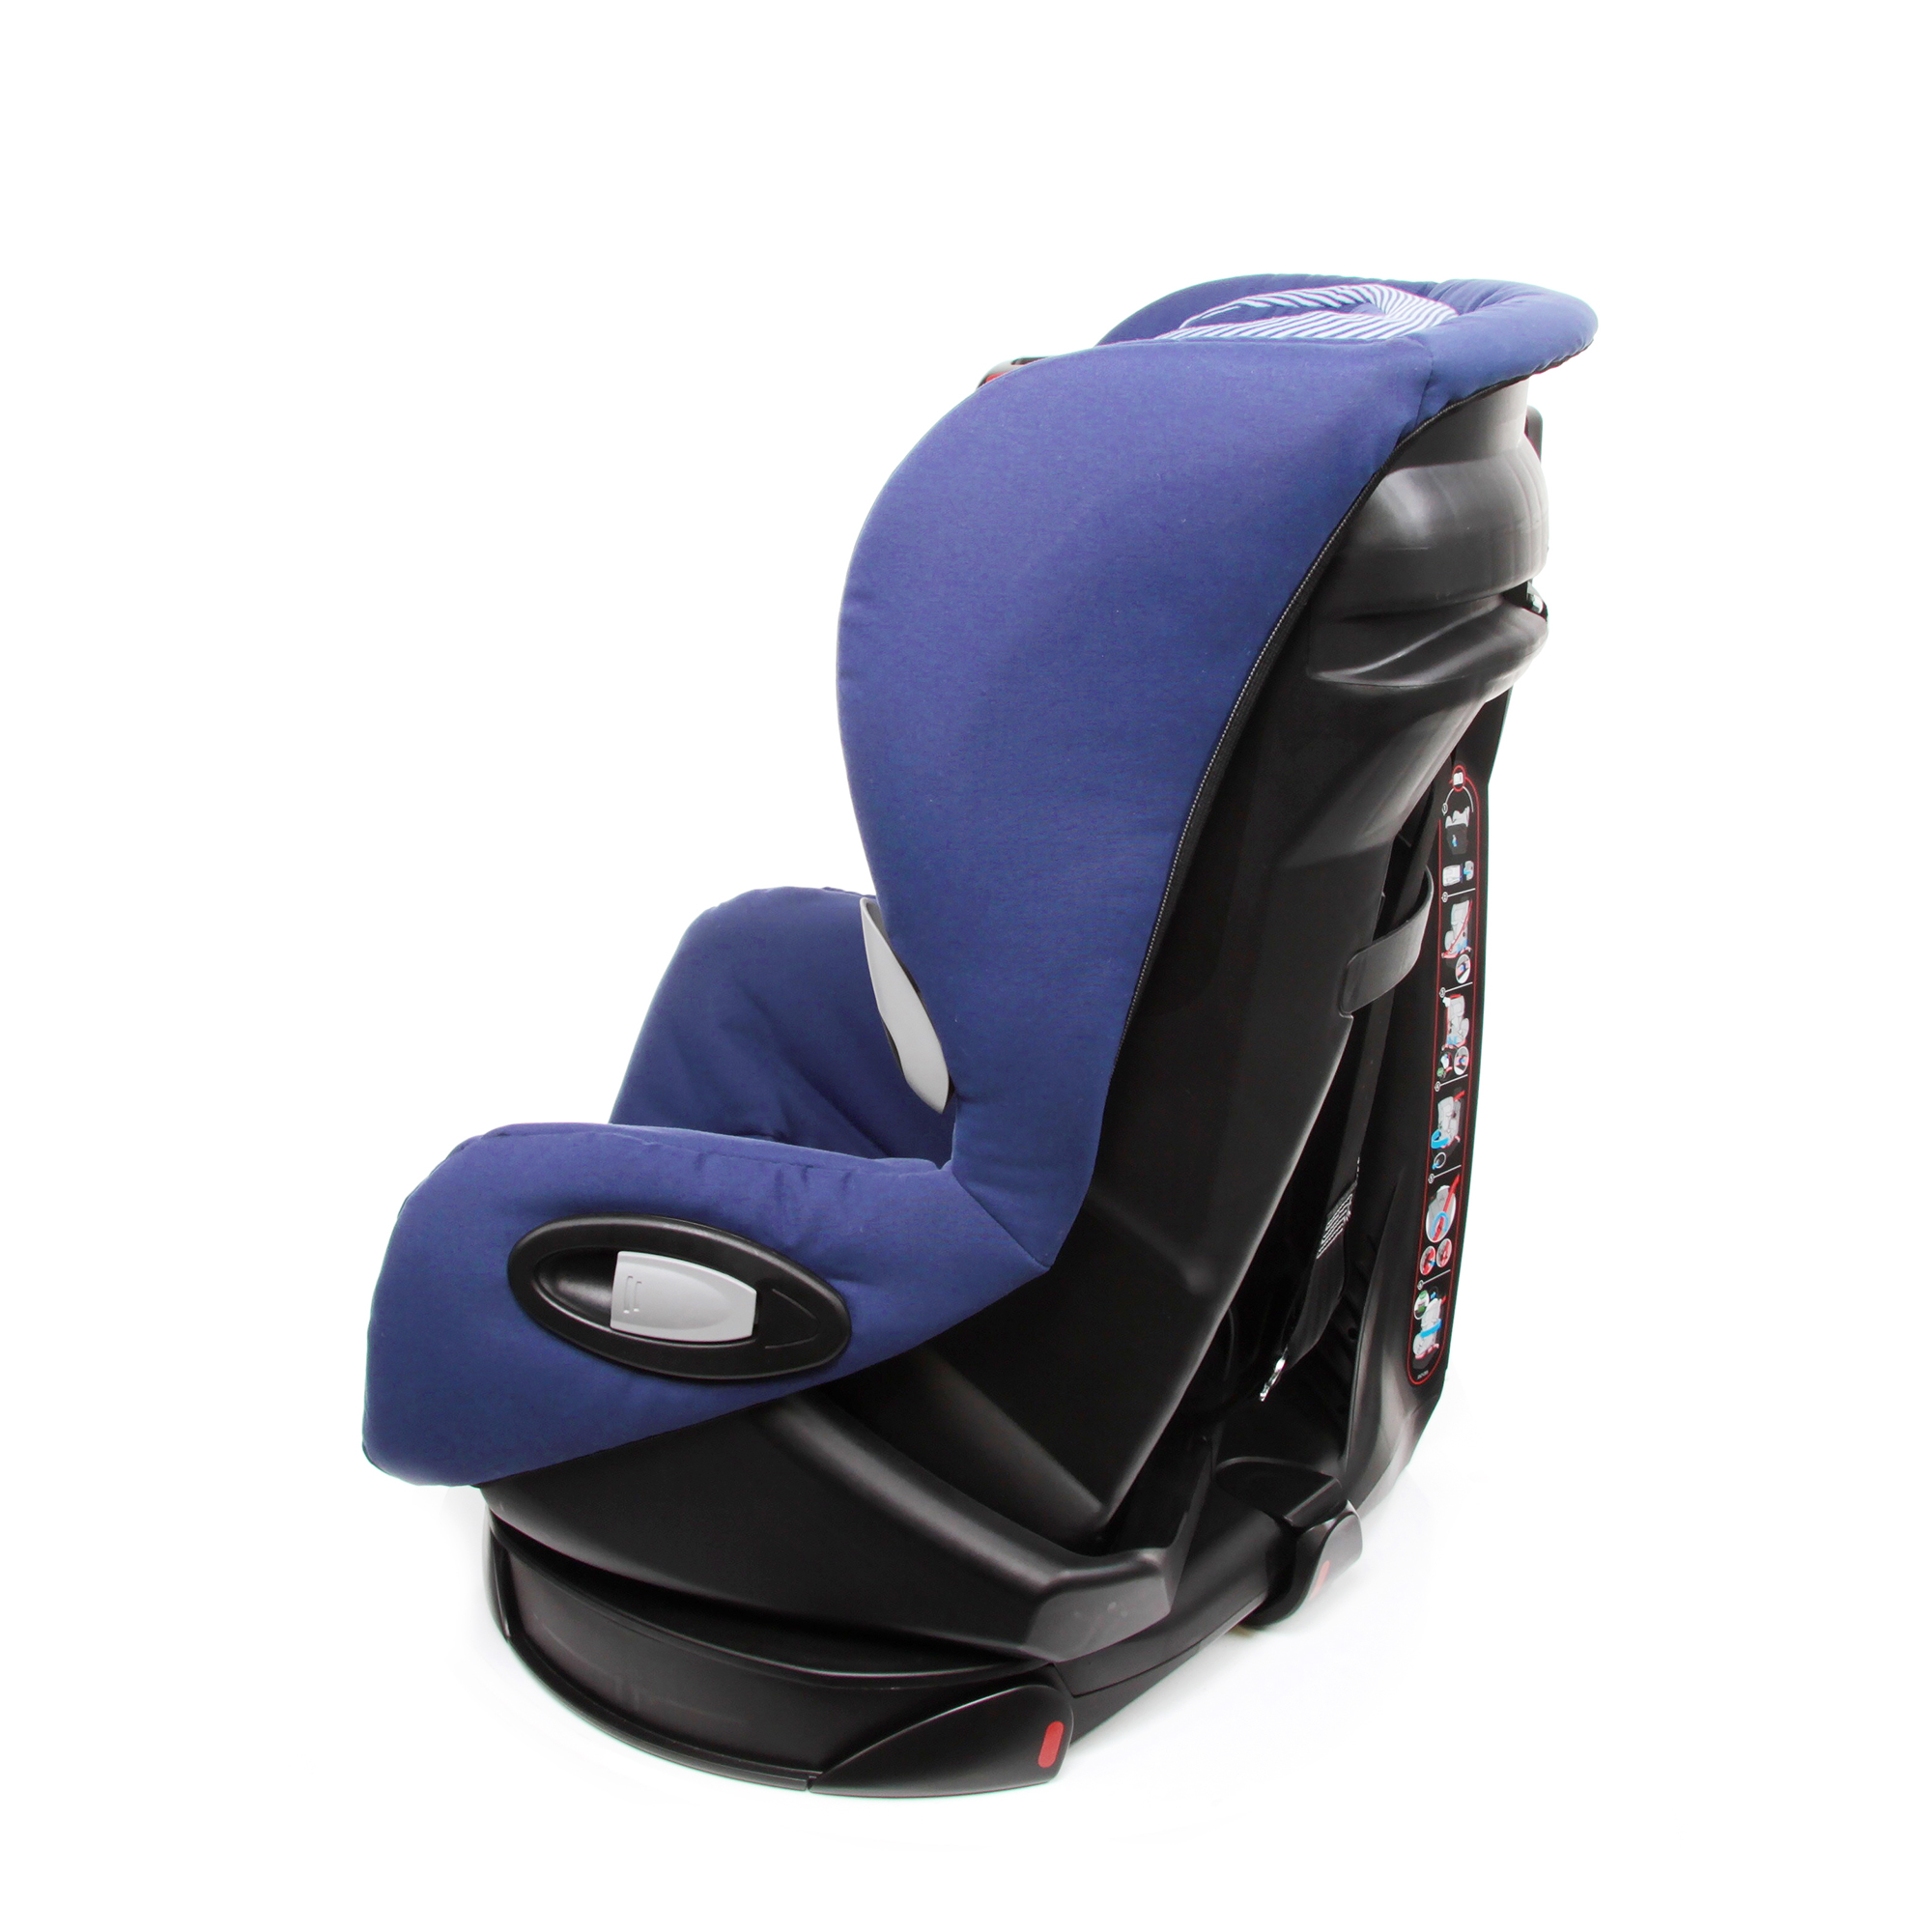 maxi cosi child car seat axiss 2017 river blue buy at kidsroom car seats. Black Bedroom Furniture Sets. Home Design Ideas